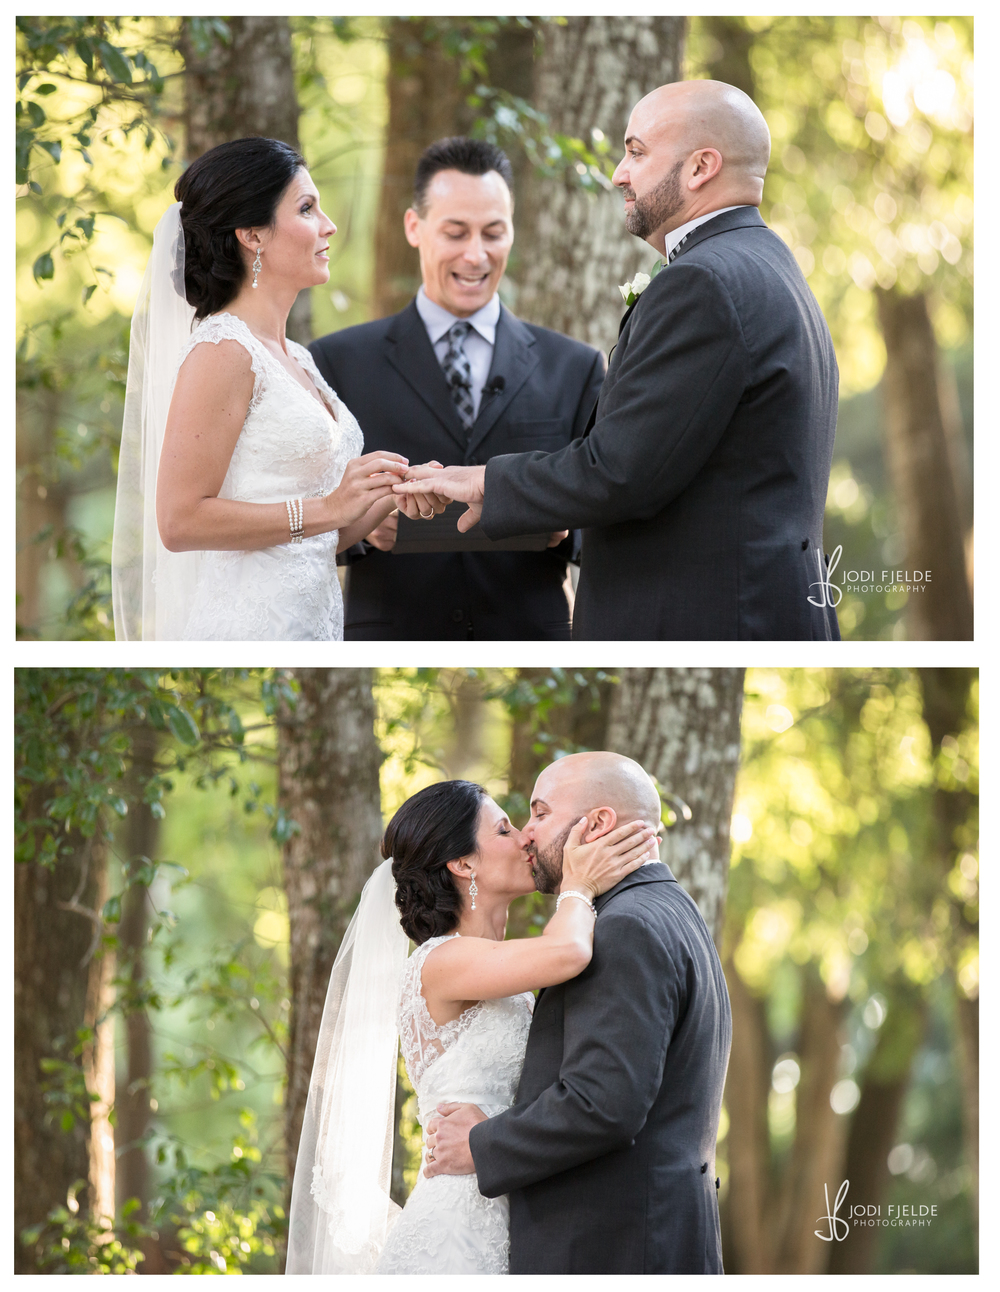 Highland_Manor_Apopka_Florida_wedding_Jackie_&_Tim_photography_jodi_Fjelde_photography-17.jpg